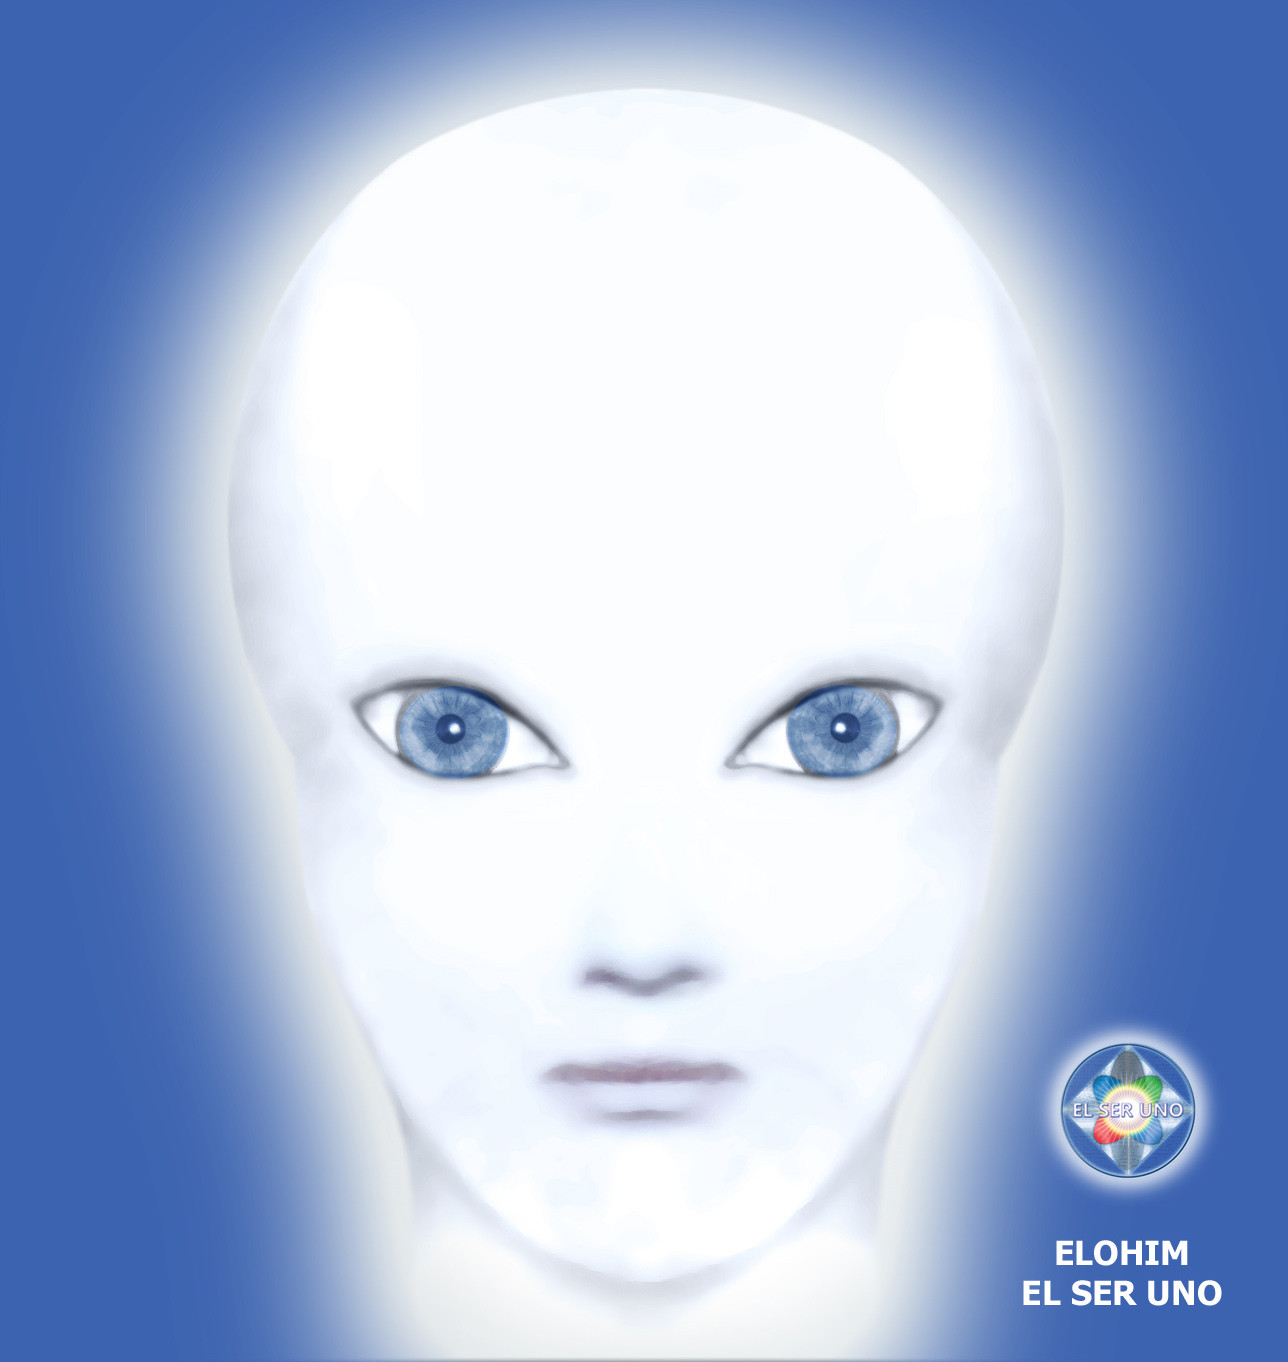 elohim Elohim are a race of spirits who possess god-like powers to mortal perceptions, they appear as beautiful men and women in a remote, sealed-off region of the earth, and spend their time in dazzling physical transformations.